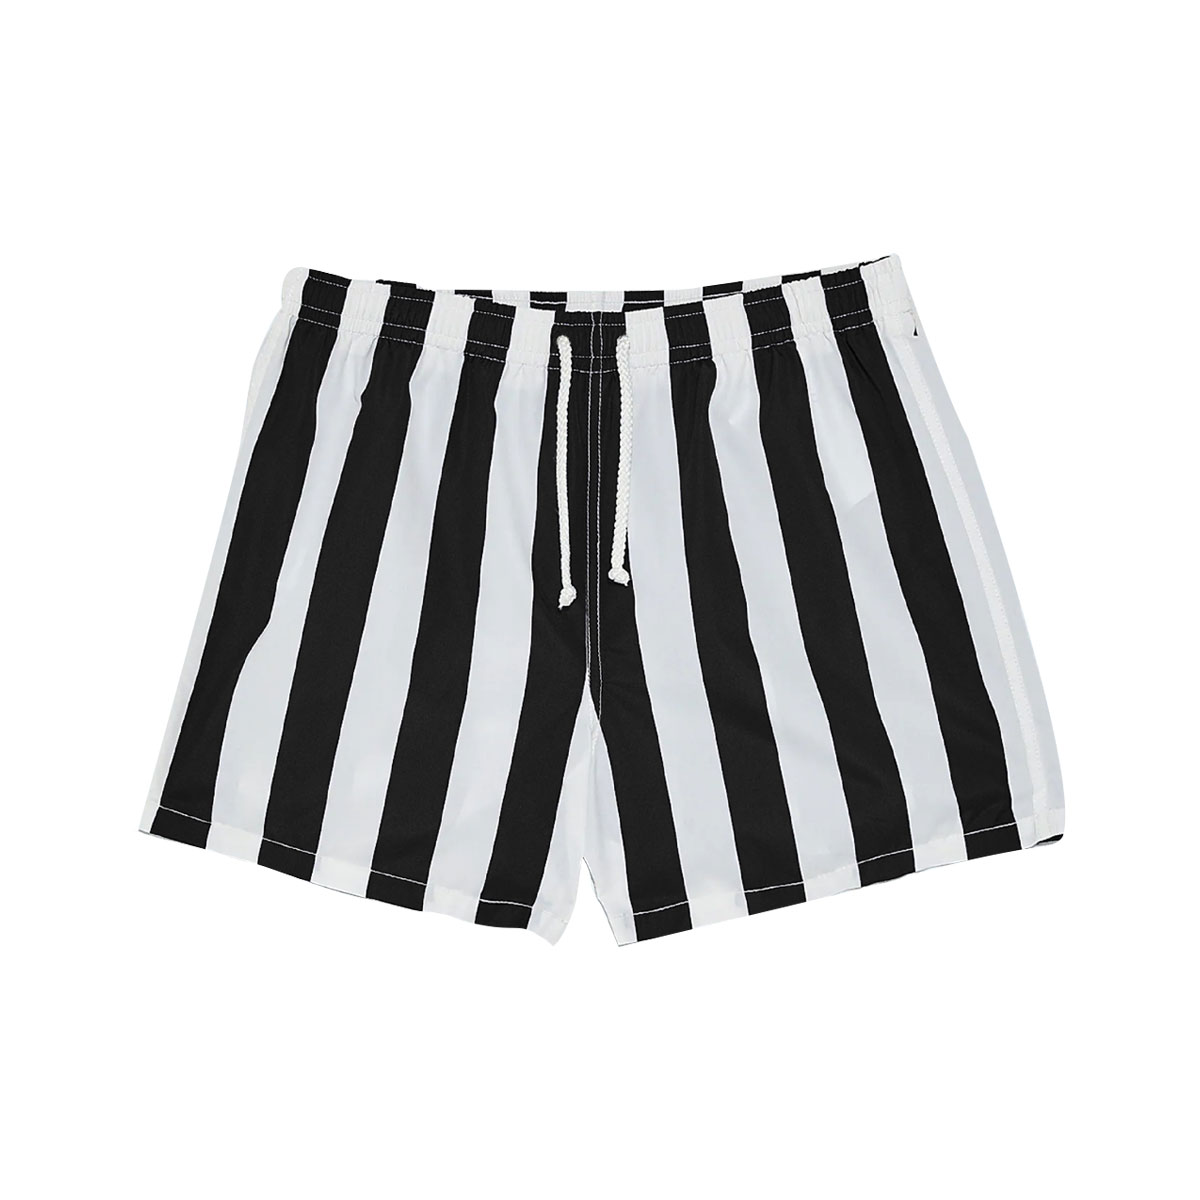 Pinstripe Short - Black & White